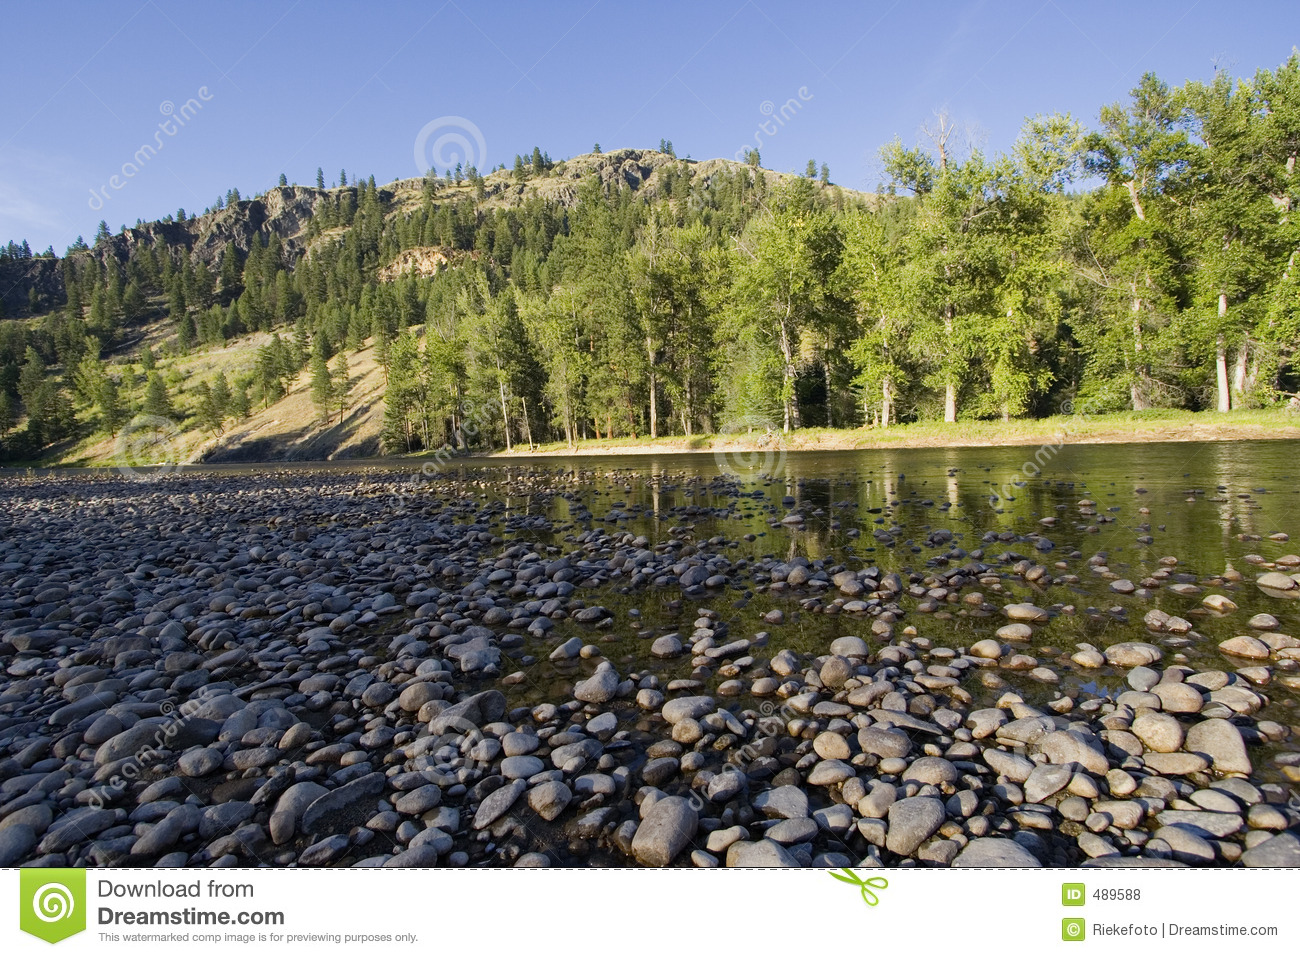 Riverbed With Pebbles In The Evening Sun Royalty Free Stock Photos.